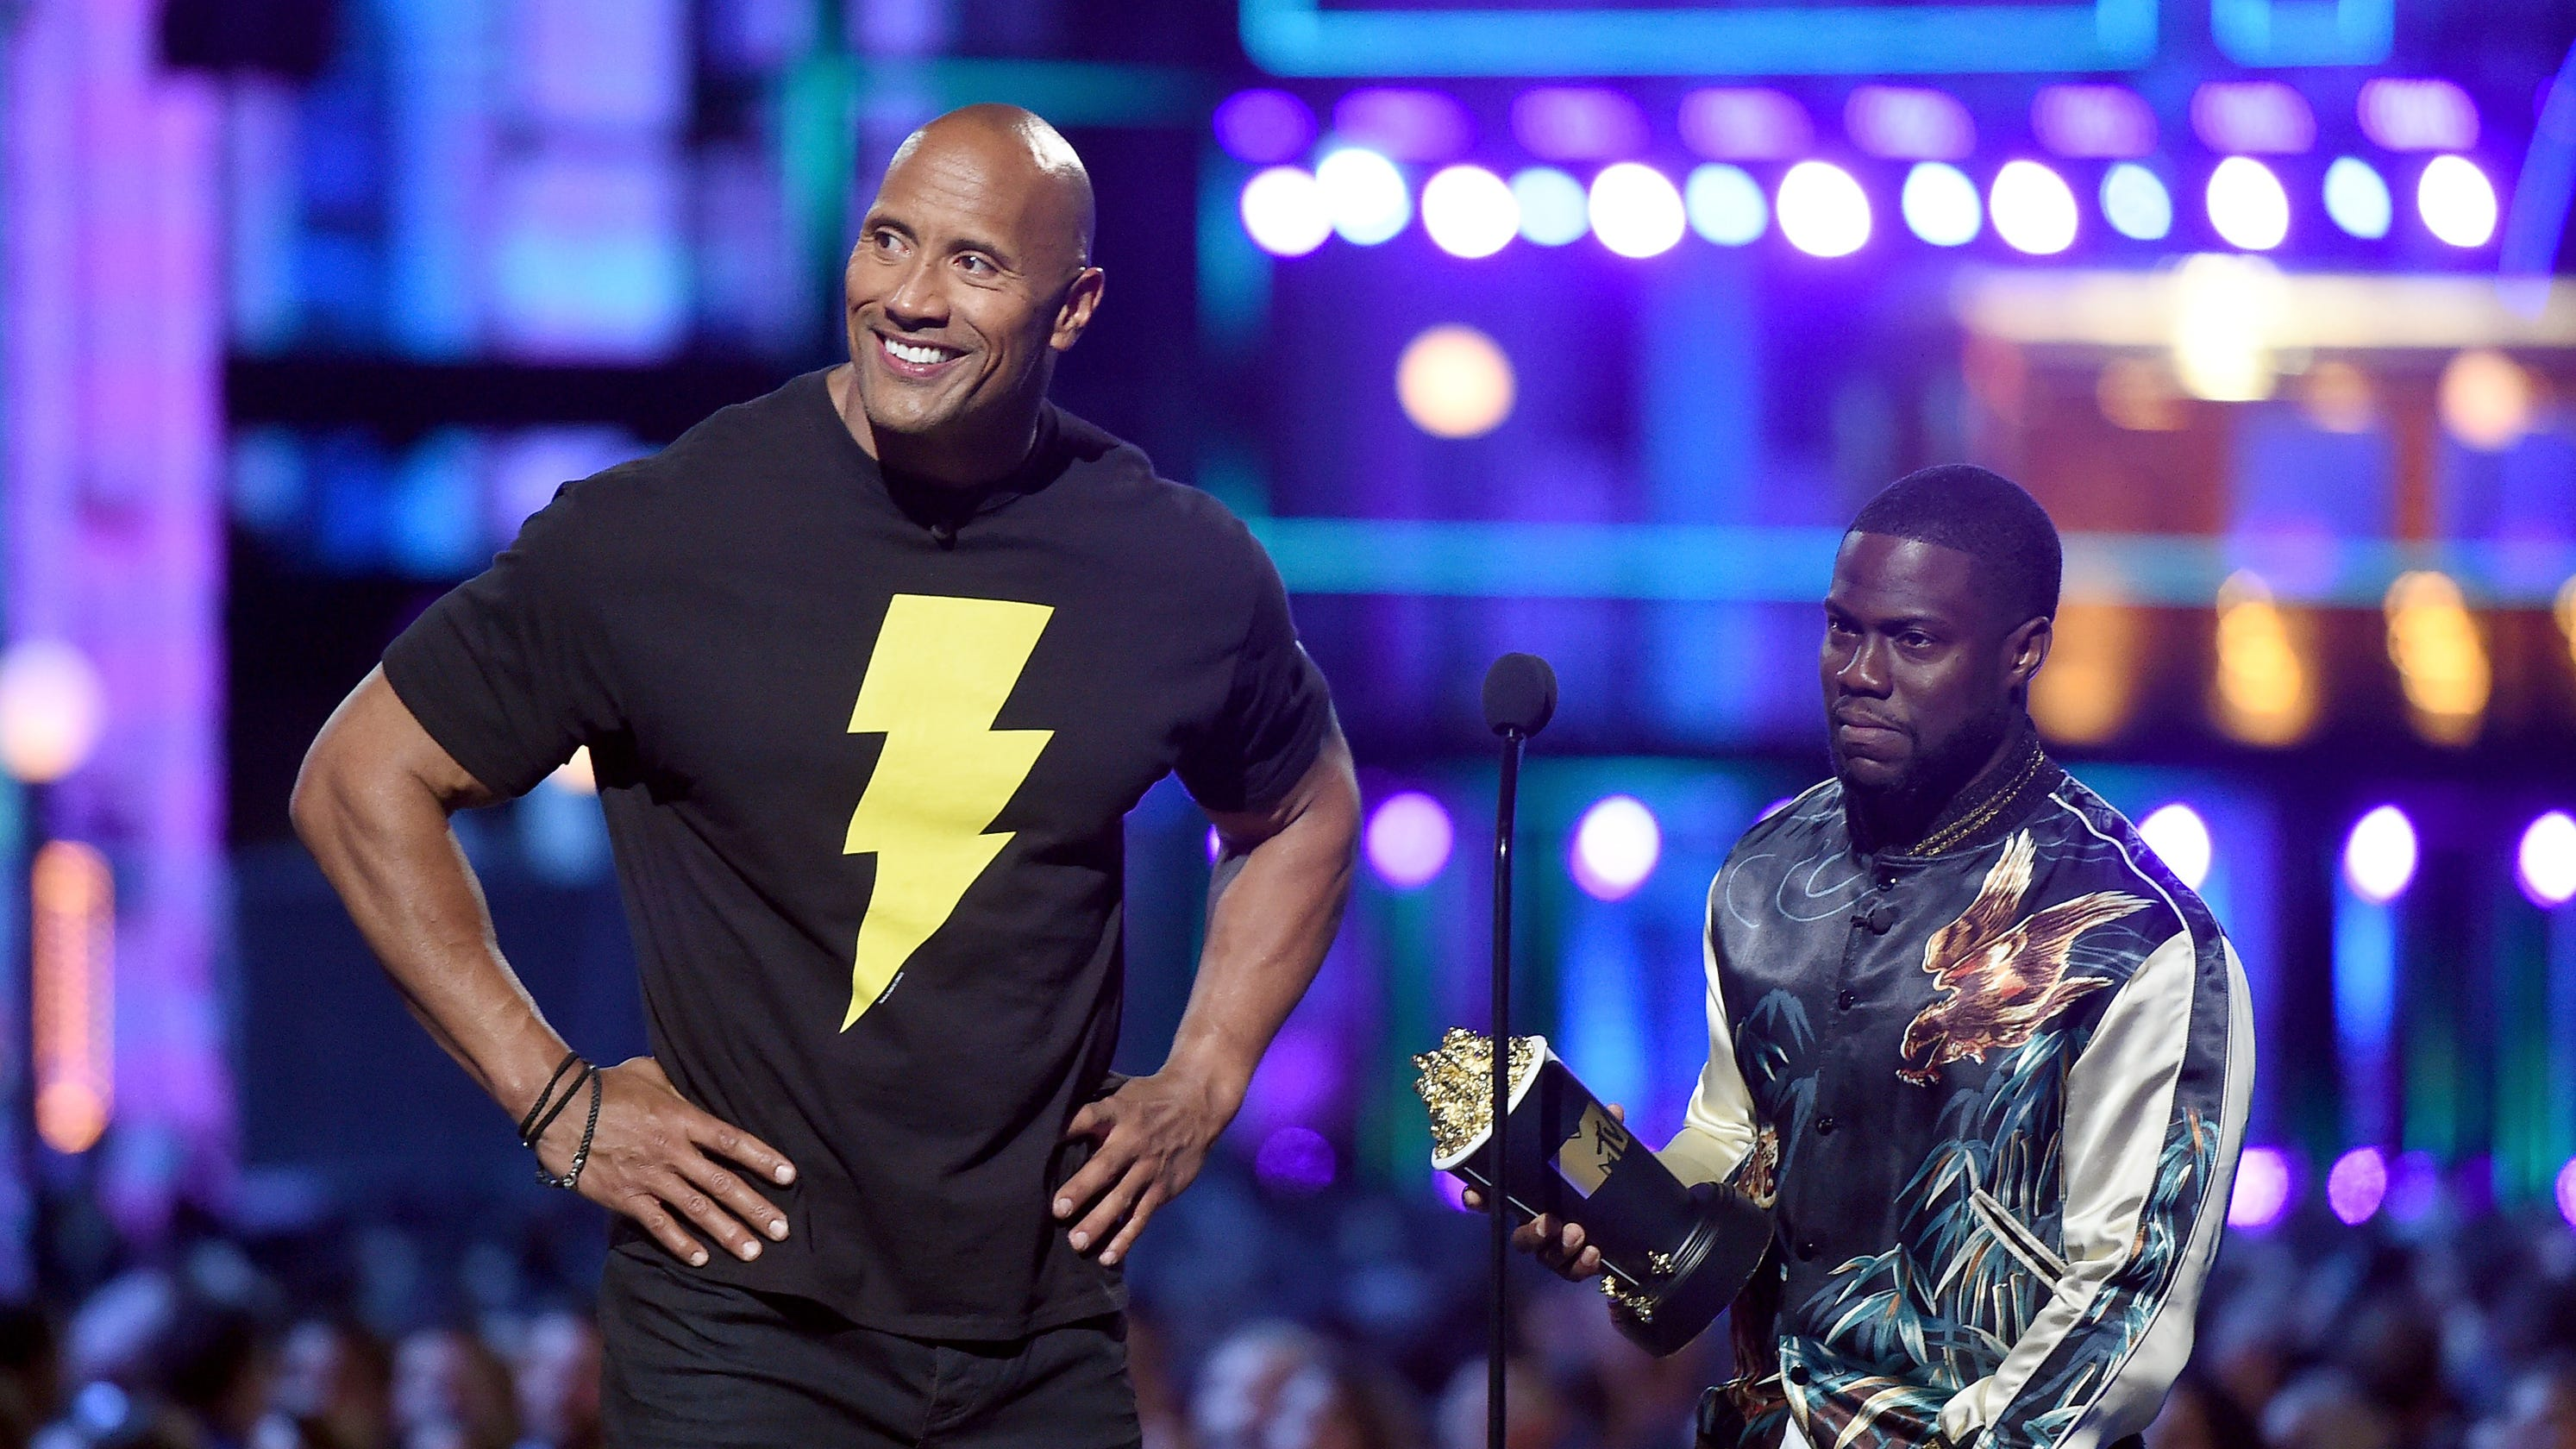 Dwayne Johnson leaves honeymoon to fill in for injured Kevin Hart